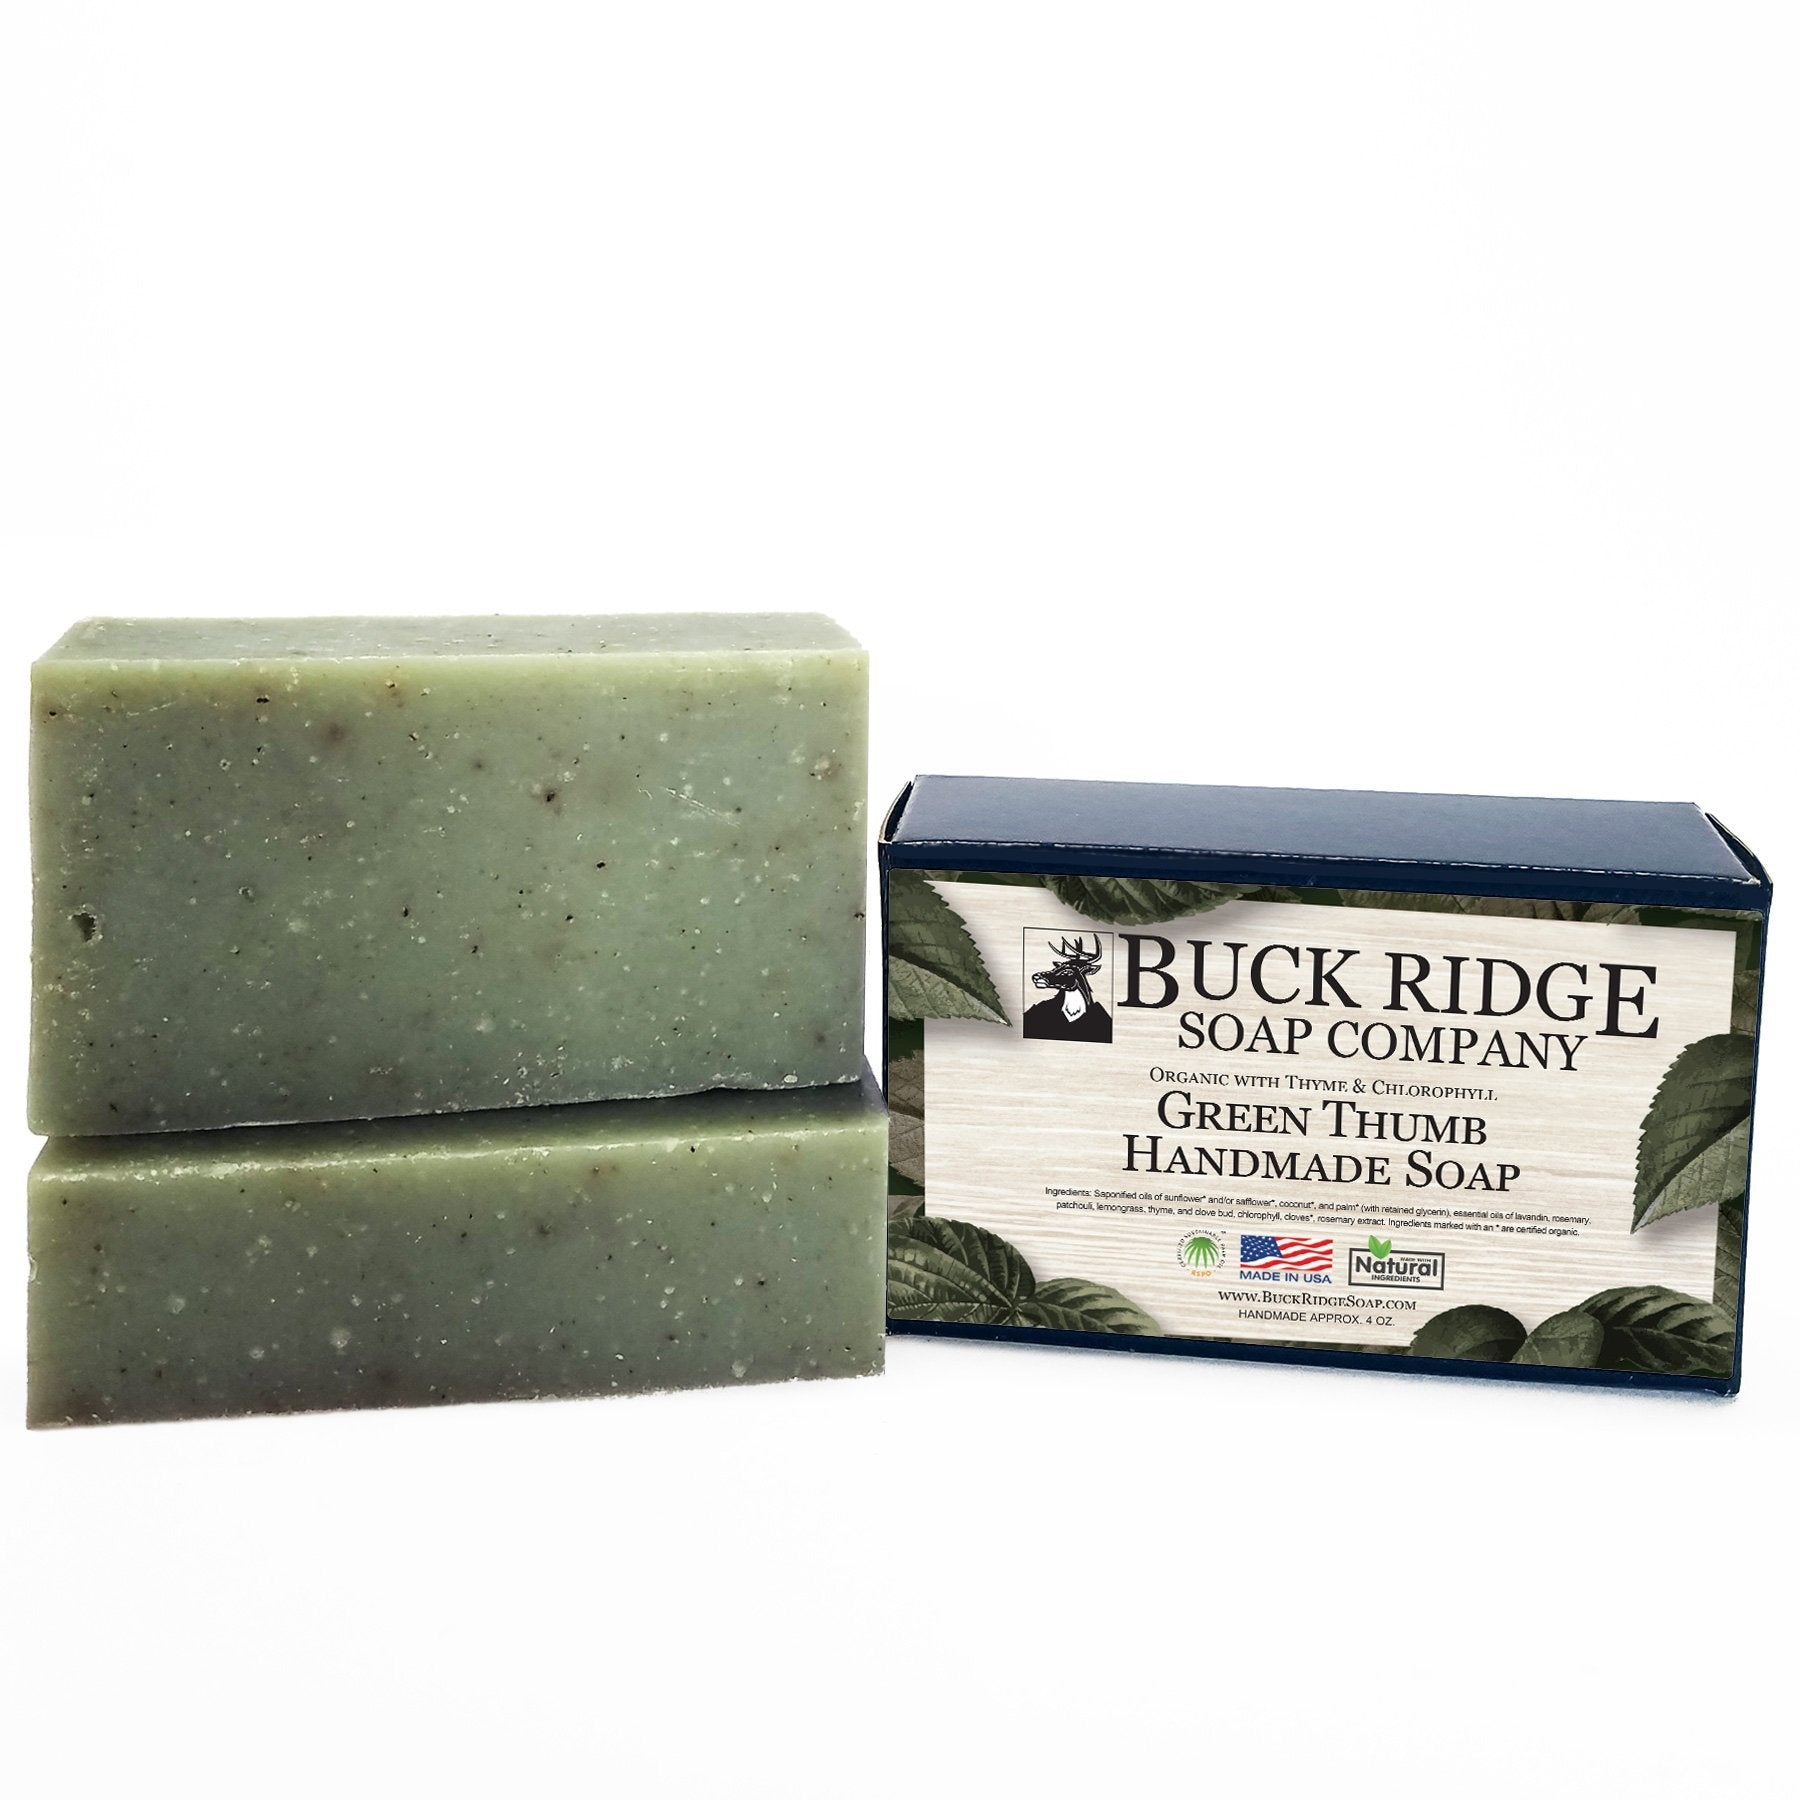 Green Thumb Handmade Soap - Organic